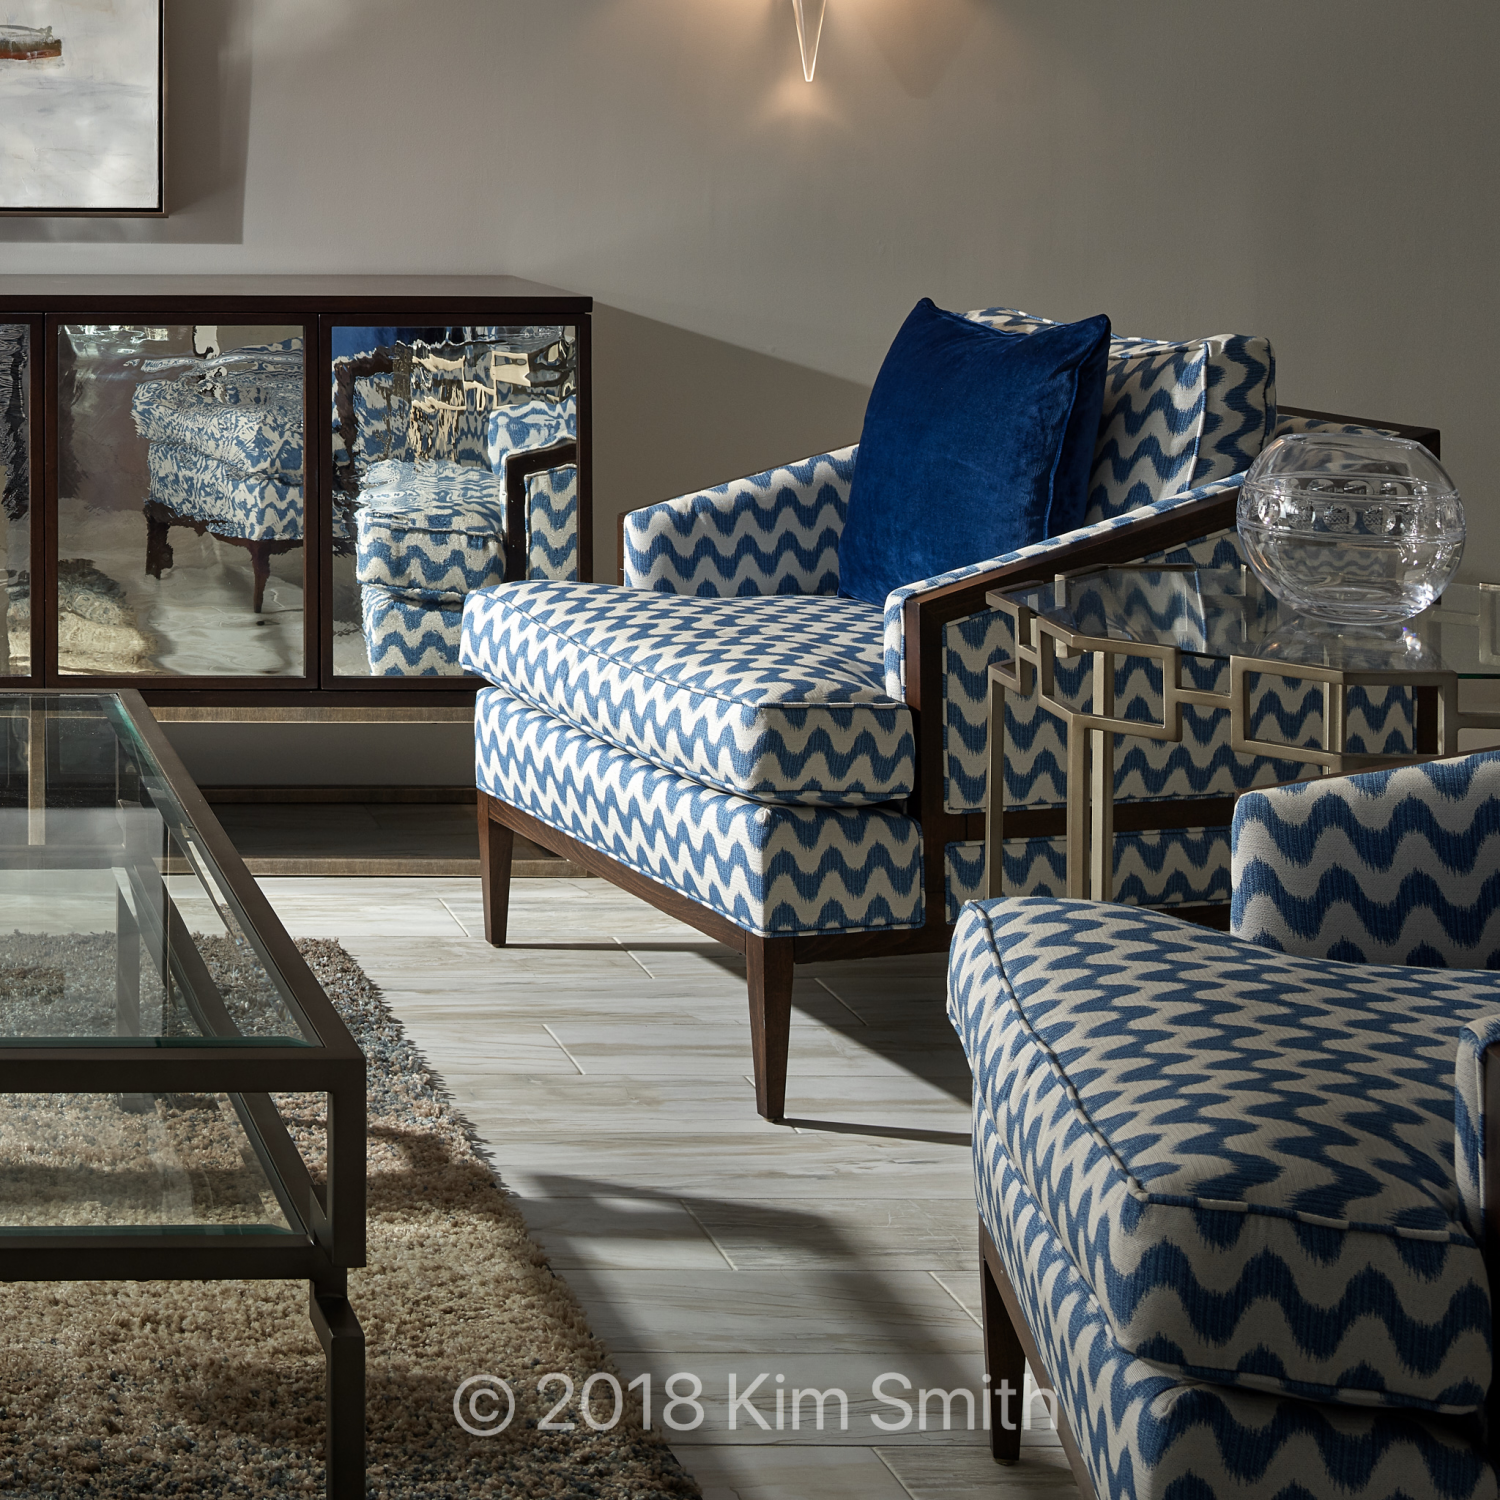 Attirant As A Former Interior Designer, It Stood Out To Me That This Particular Hue  Was Incredibly Consistent So Images Needed To Be Properly Color Balanced  For A ...